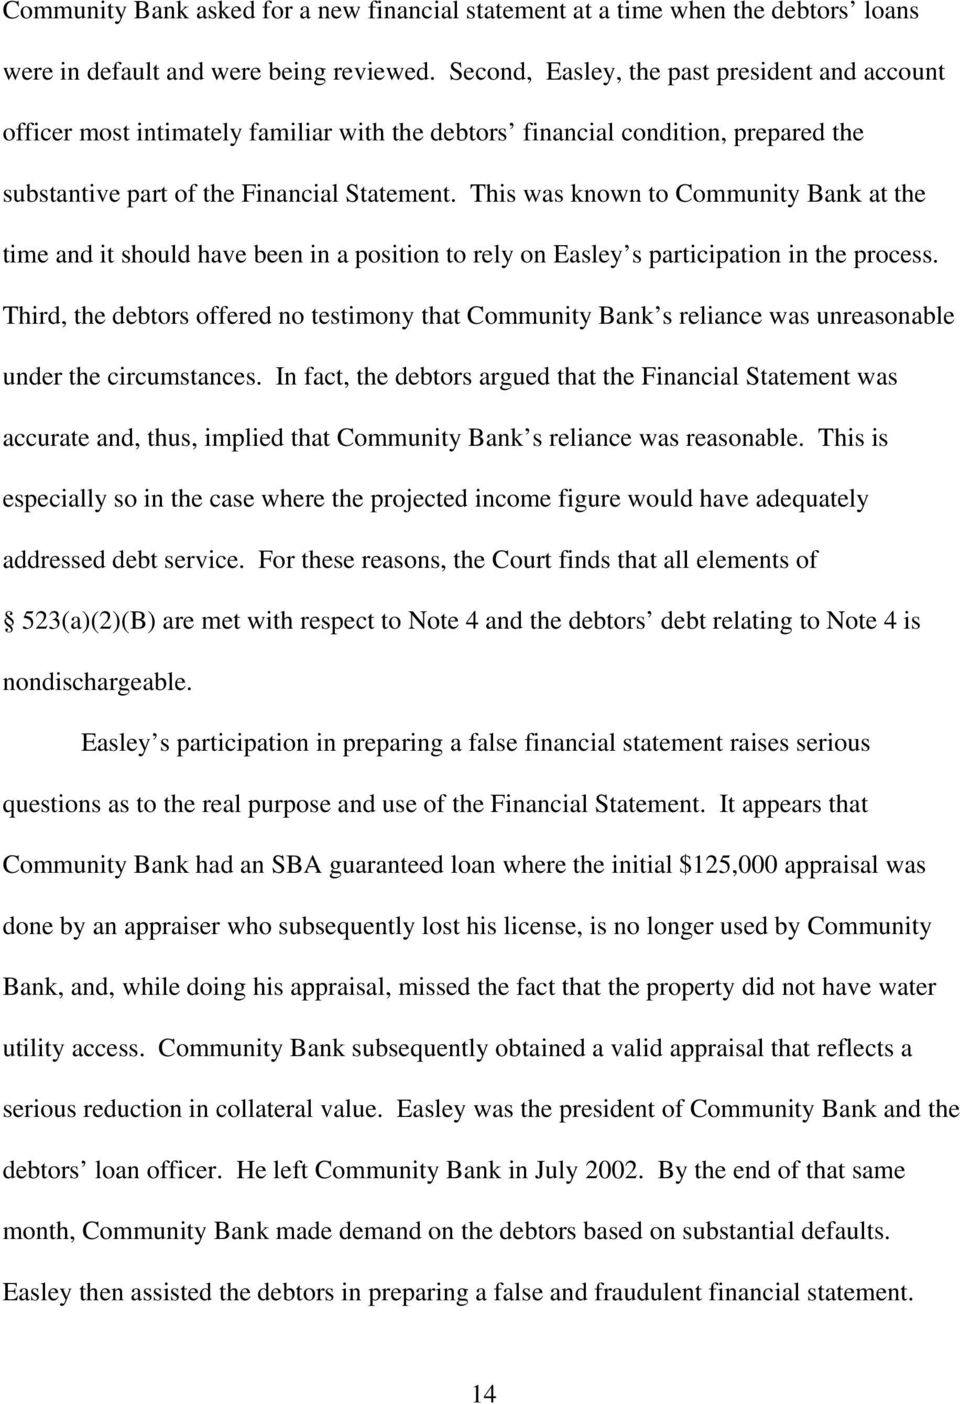 This was known to Community Bank at the time and it should have been in a position to rely on Easley s participation in the process.